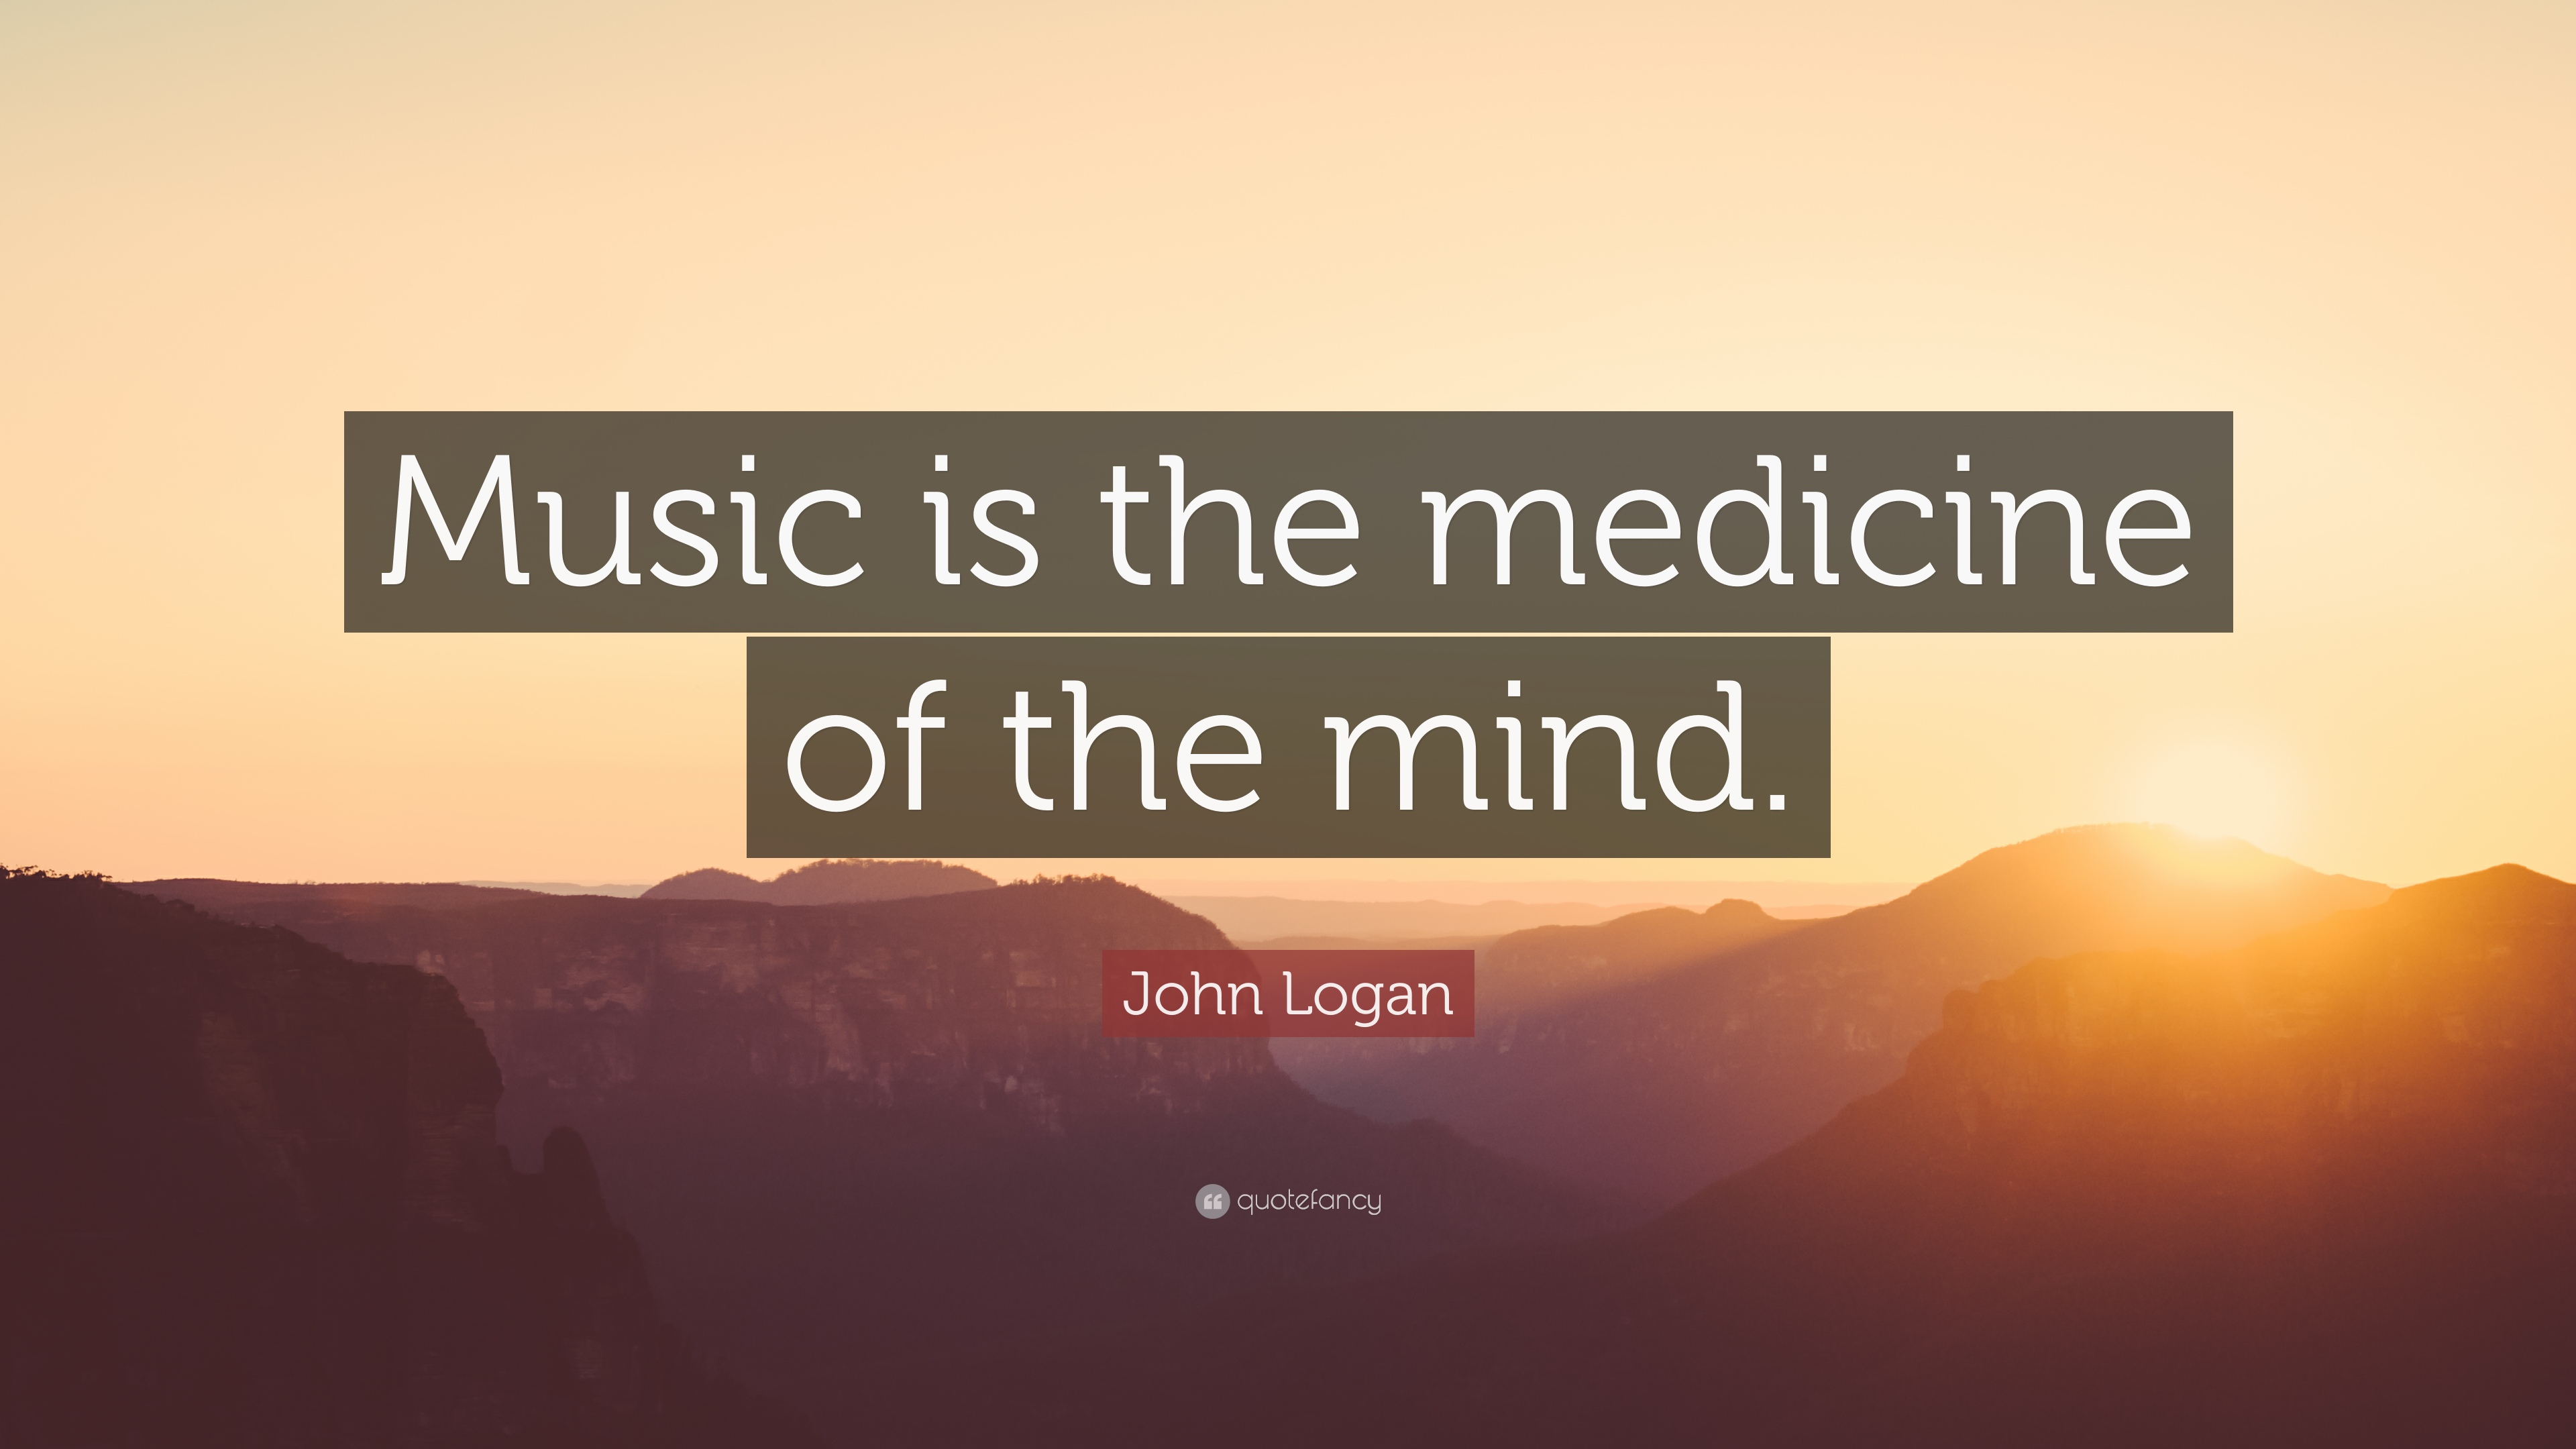 Kurt Cobain Quotes Wallpaper John Logan Quote Music Is The Medicine Of The Mind 14